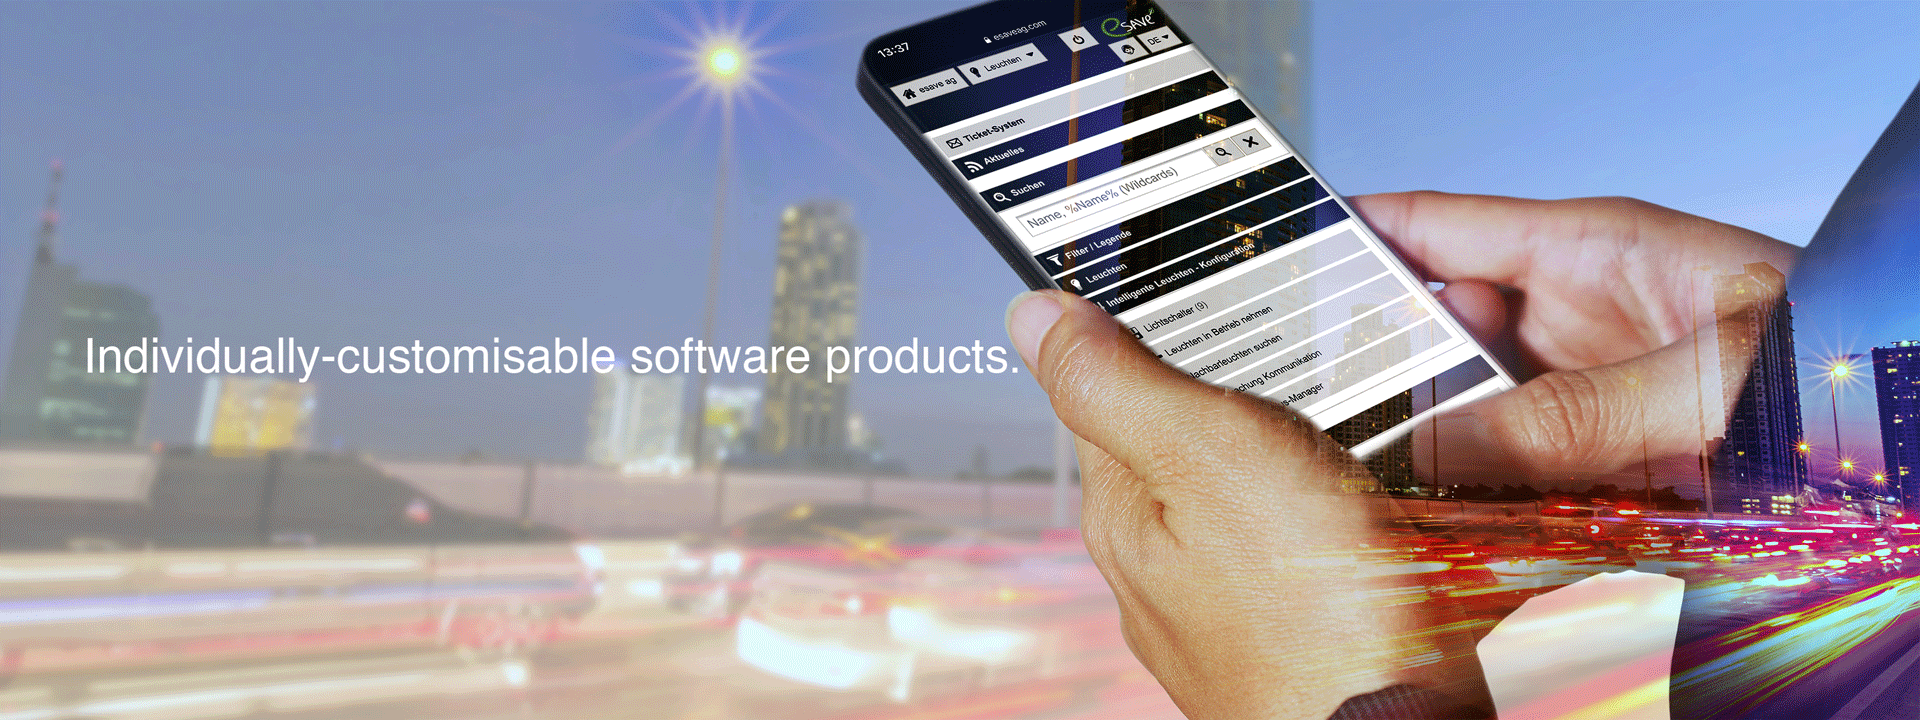 Individually-customisable software products